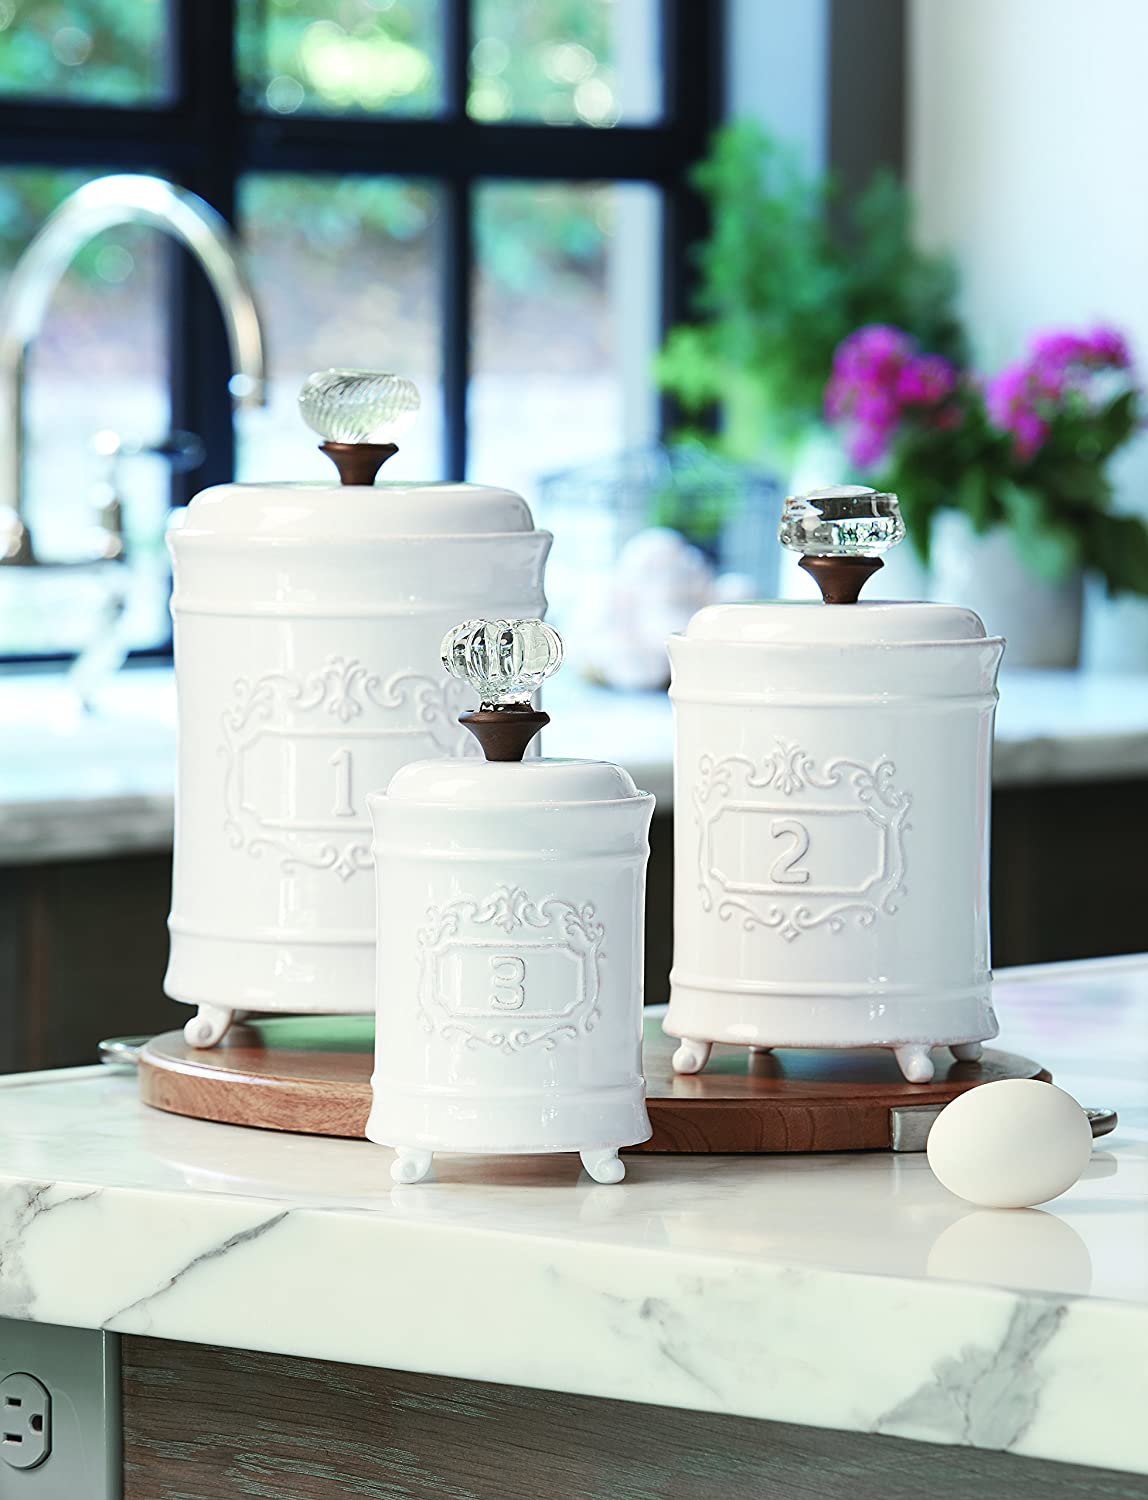 Mud Pie 4931002 Kitchen Canister (Set of 3), White